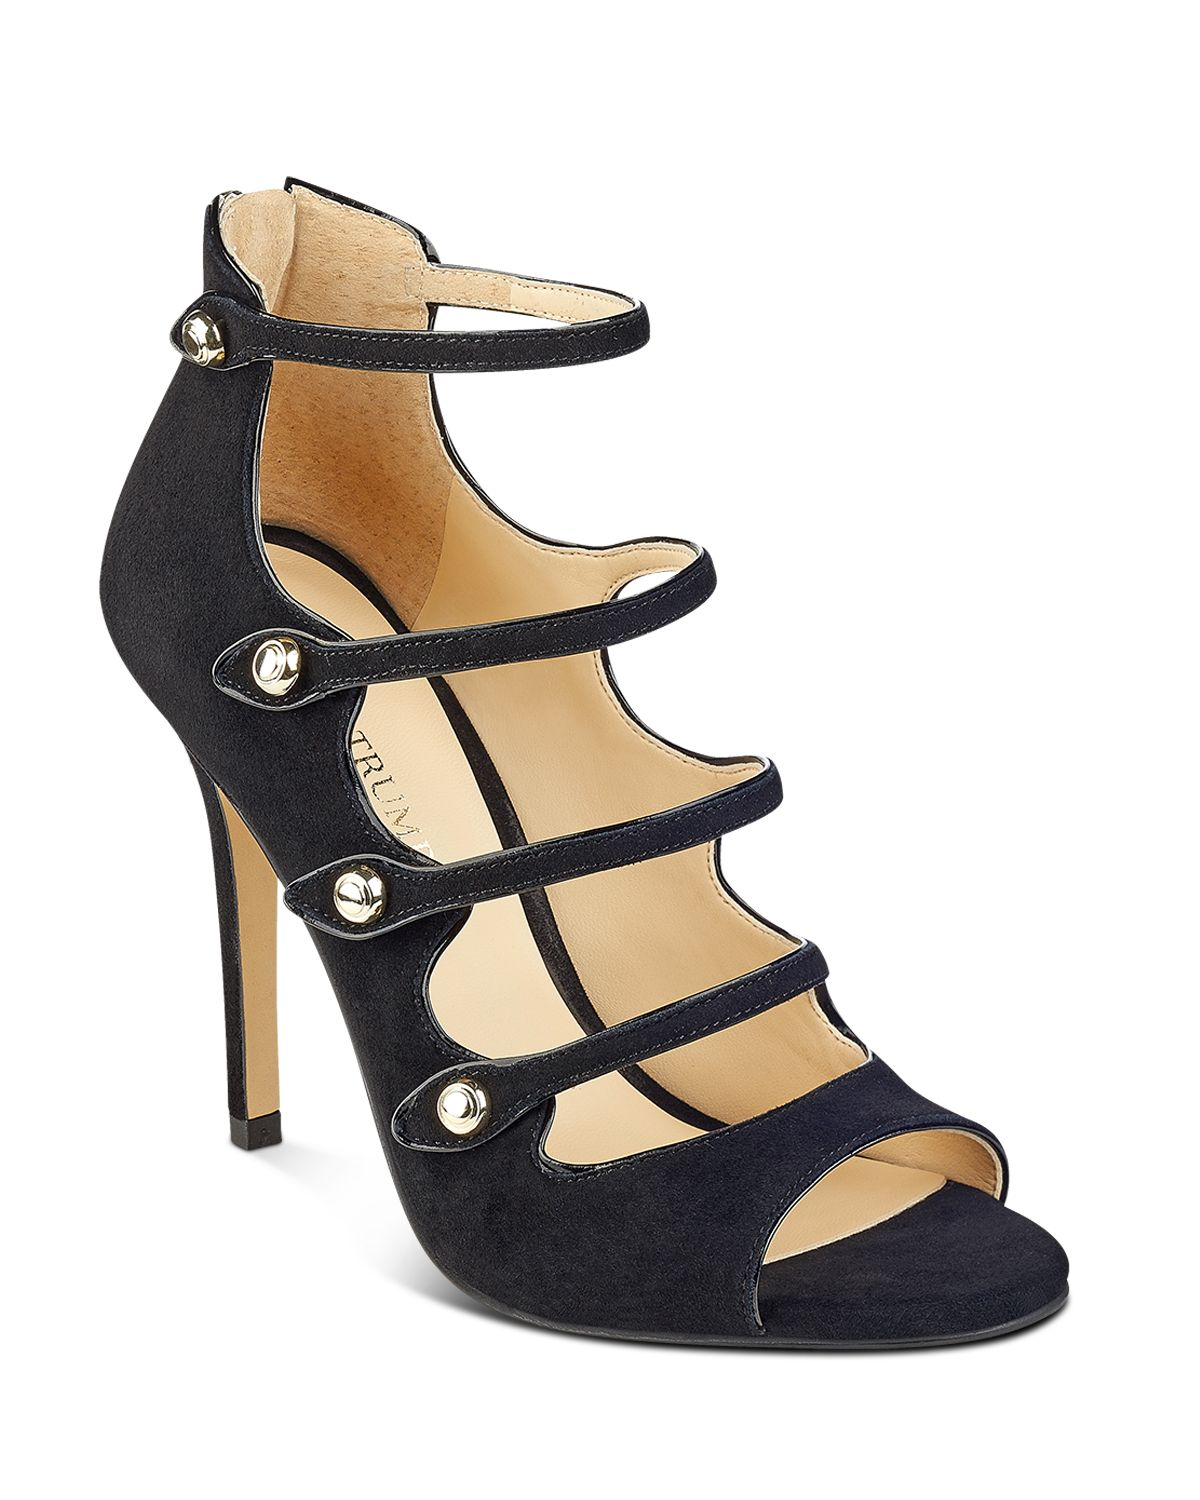 Ivanka Trump Houston Strappy High-Heel Sandals